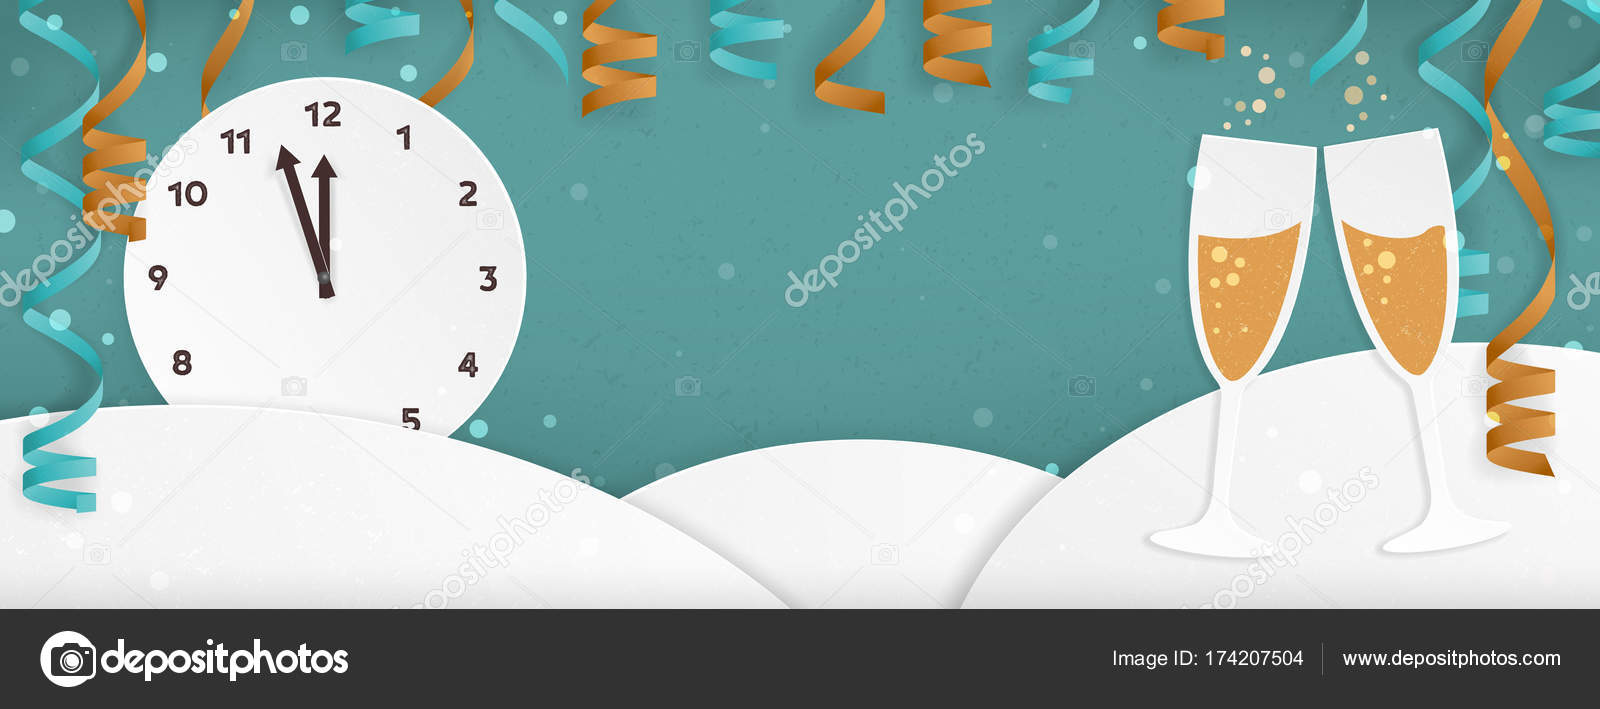 new year themed minimal winter landscape banner with clock champagne glasses party streamers